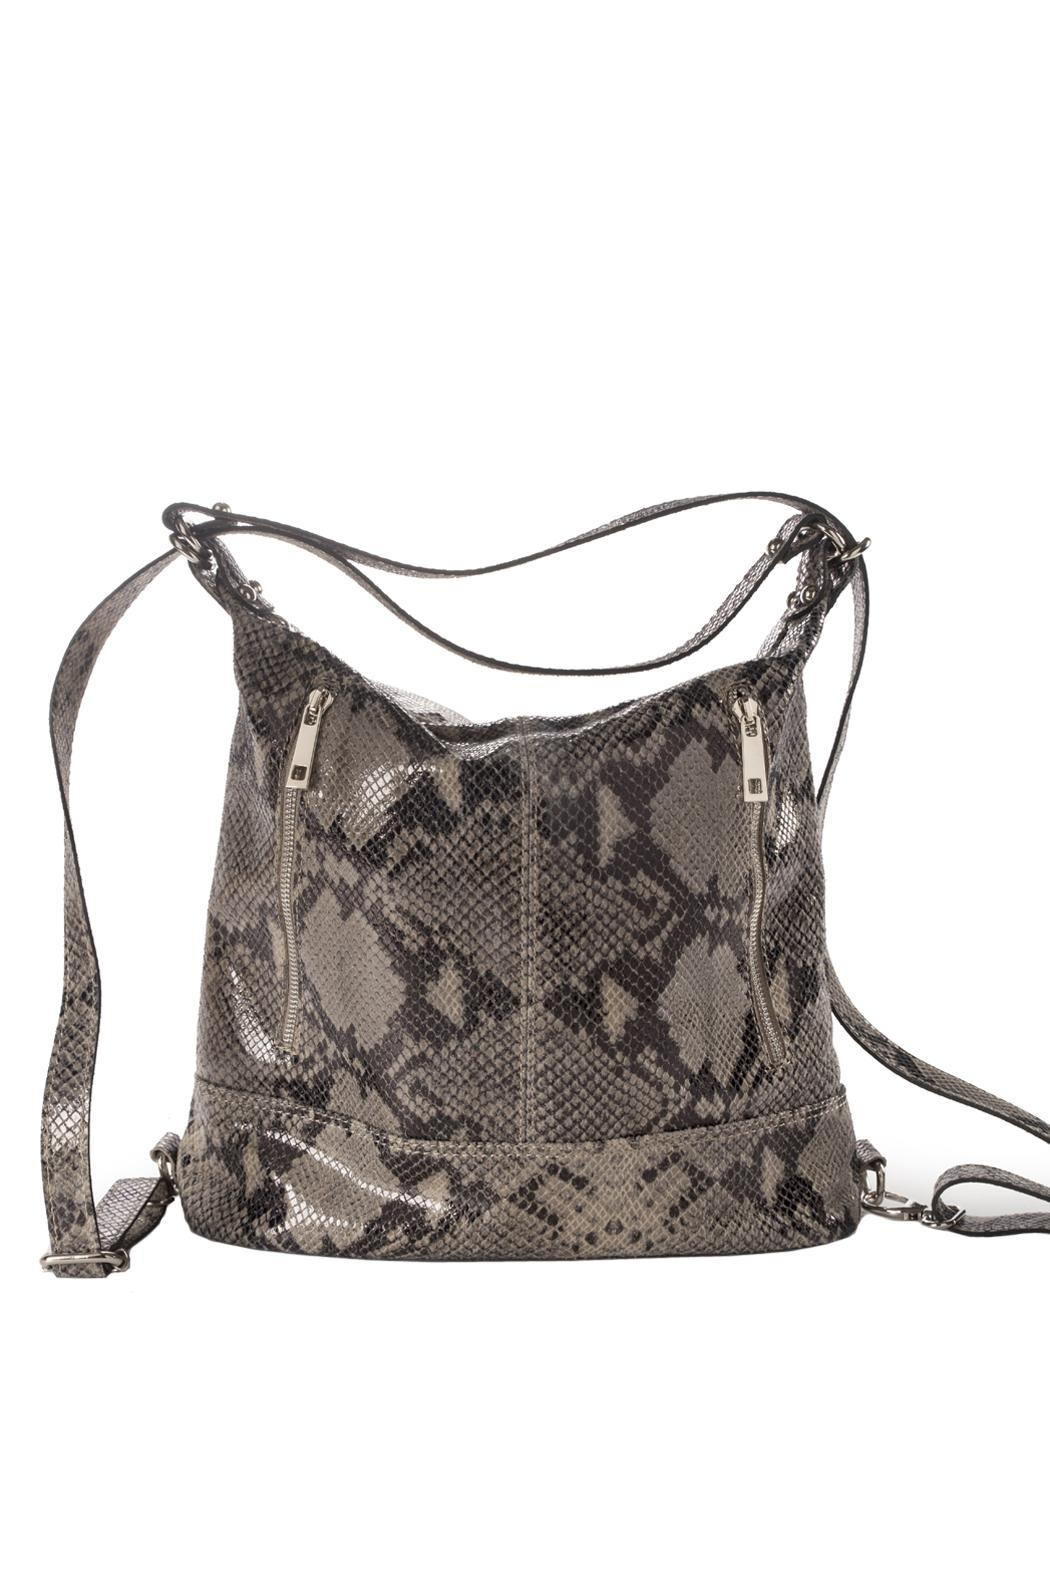 Bevini Modena Python Convertible Backpack-Tote - Front Cropped Image